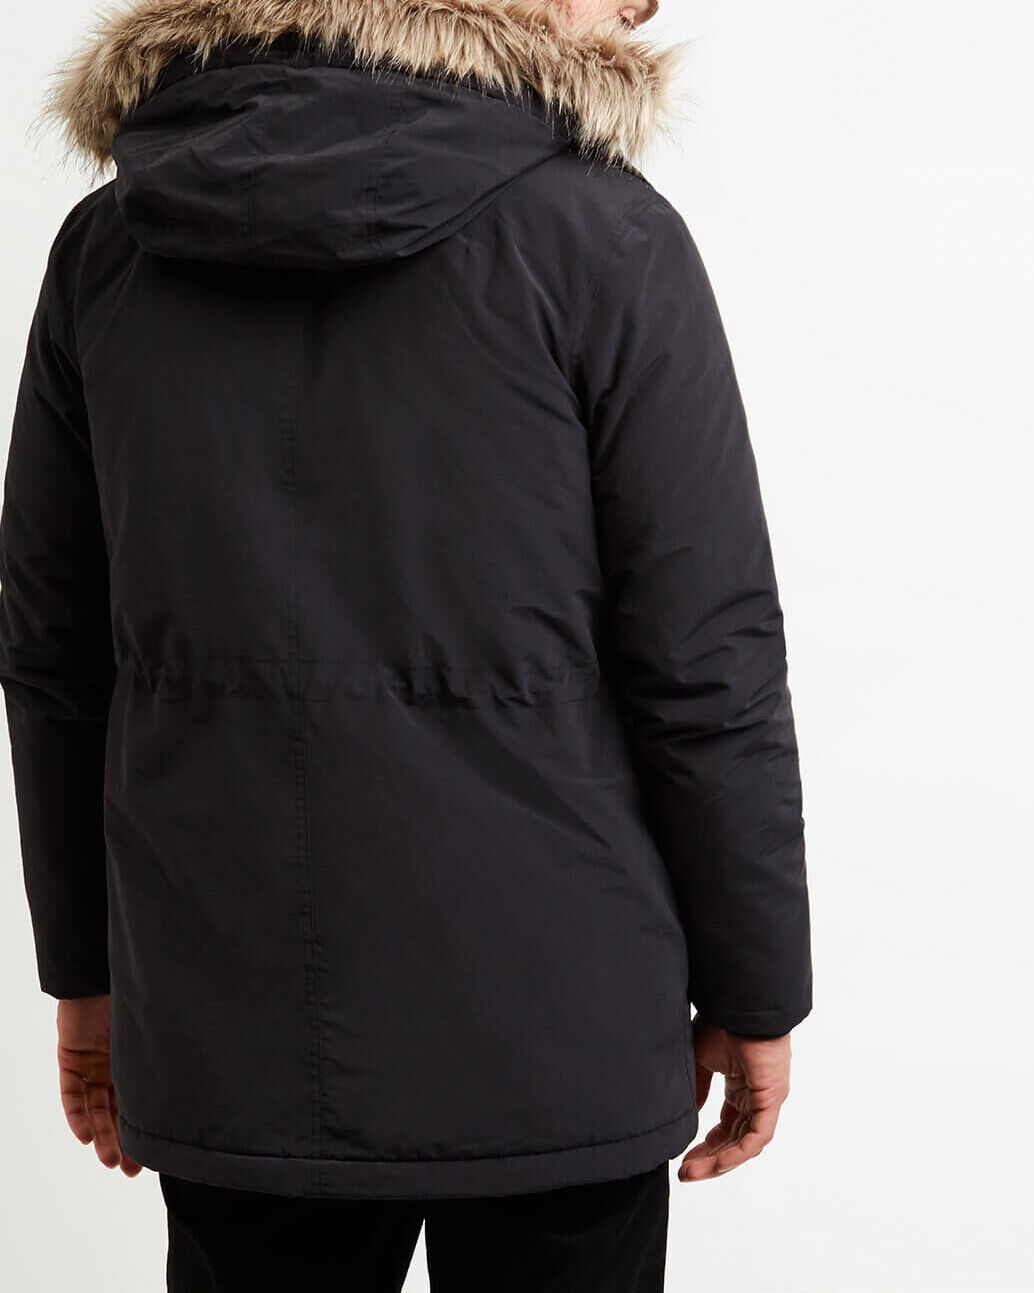 Lyle-and-Scott-Mens-Winterweight-Microfleece-Lined-Parka thumbnail 19